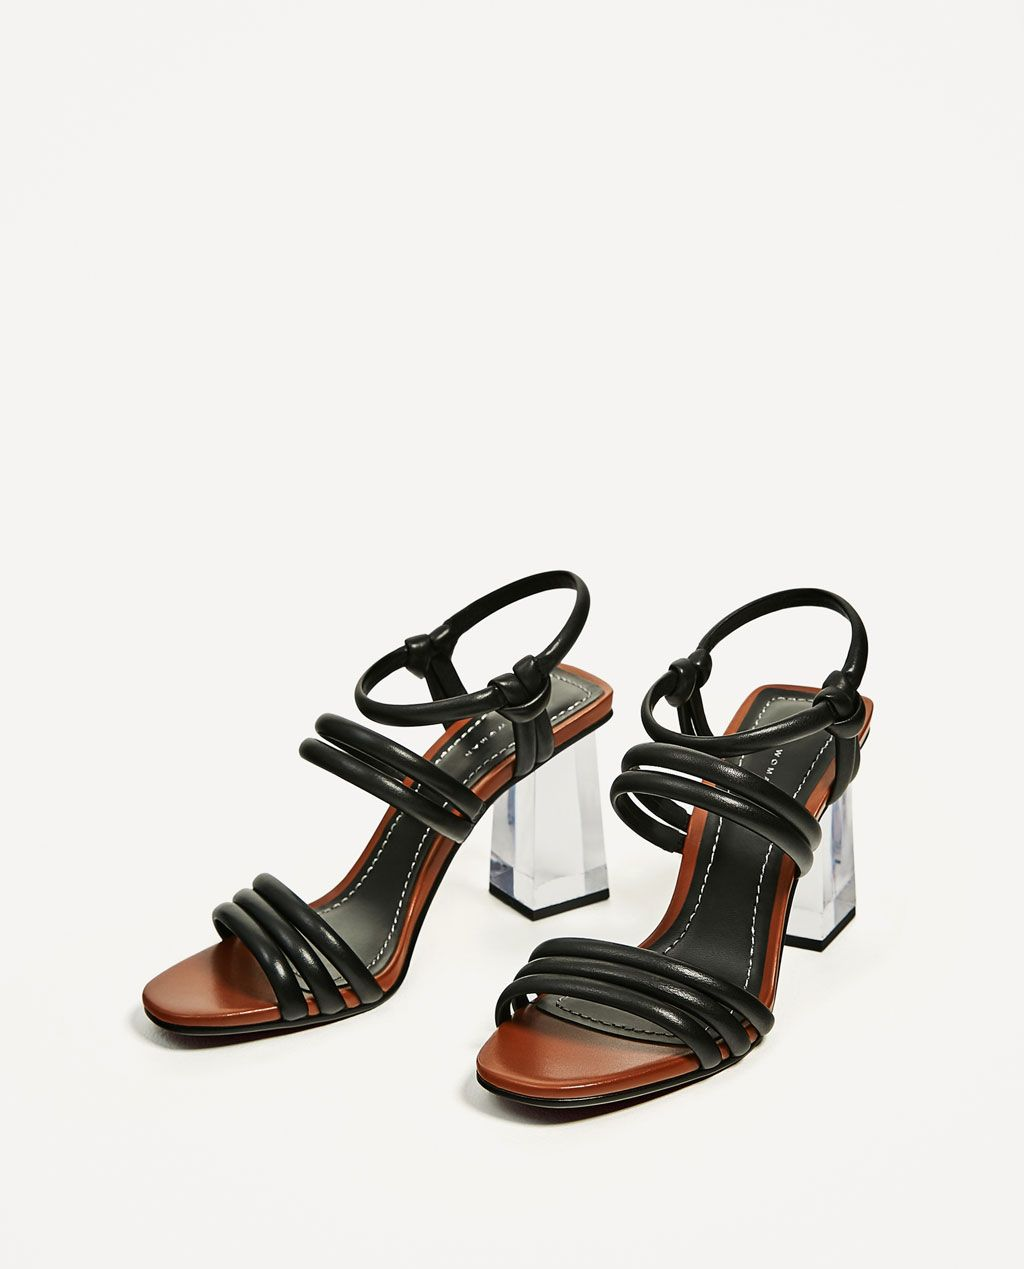 d8aa37741c9d LEATHER SANDALS WITH METHACRYLATE HEEL-View all-SHOES-WOMAN